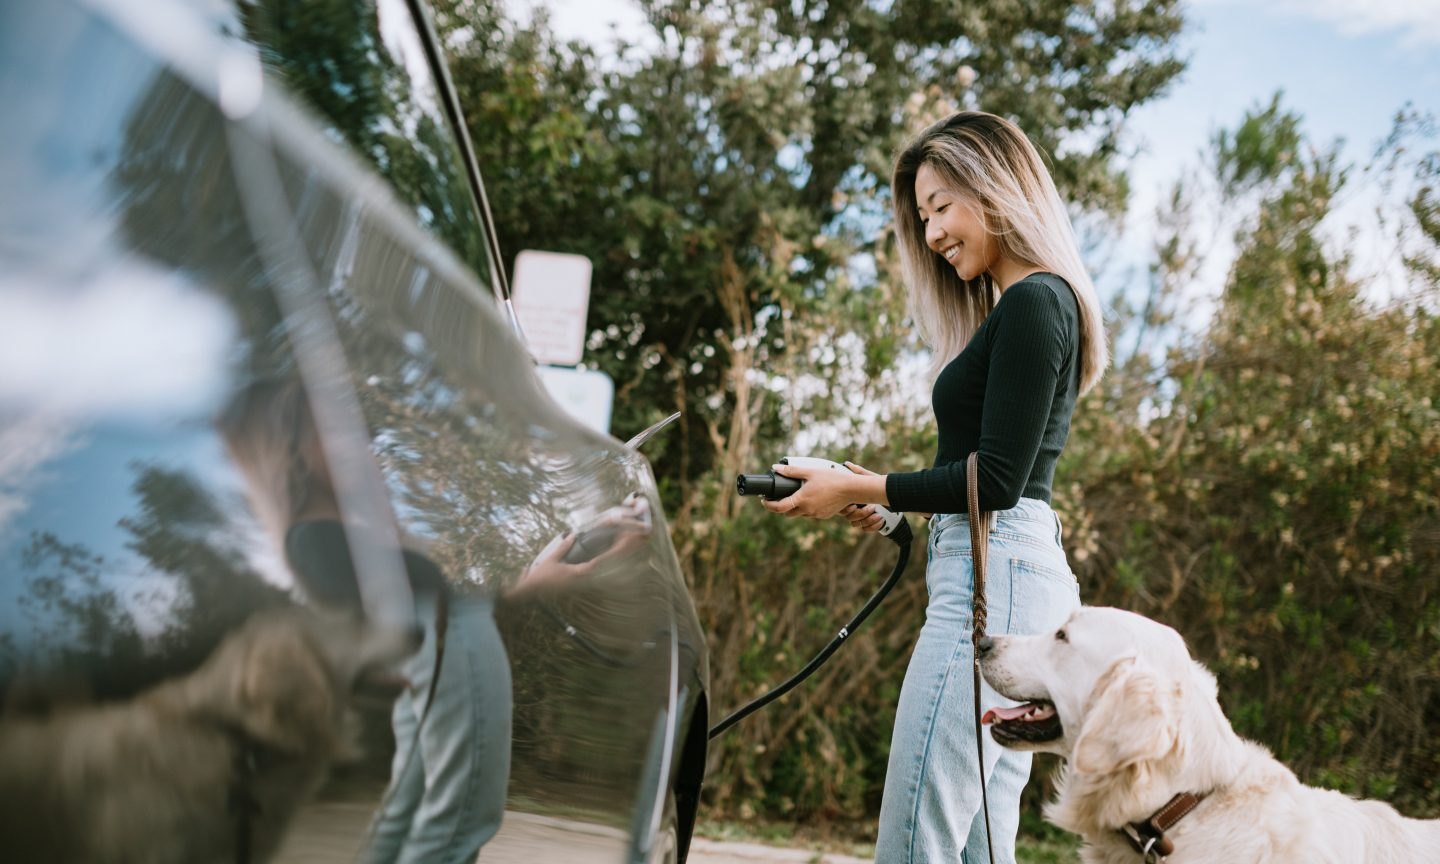 Is It Finally Time to Get an Electric Car? - NerdWallet